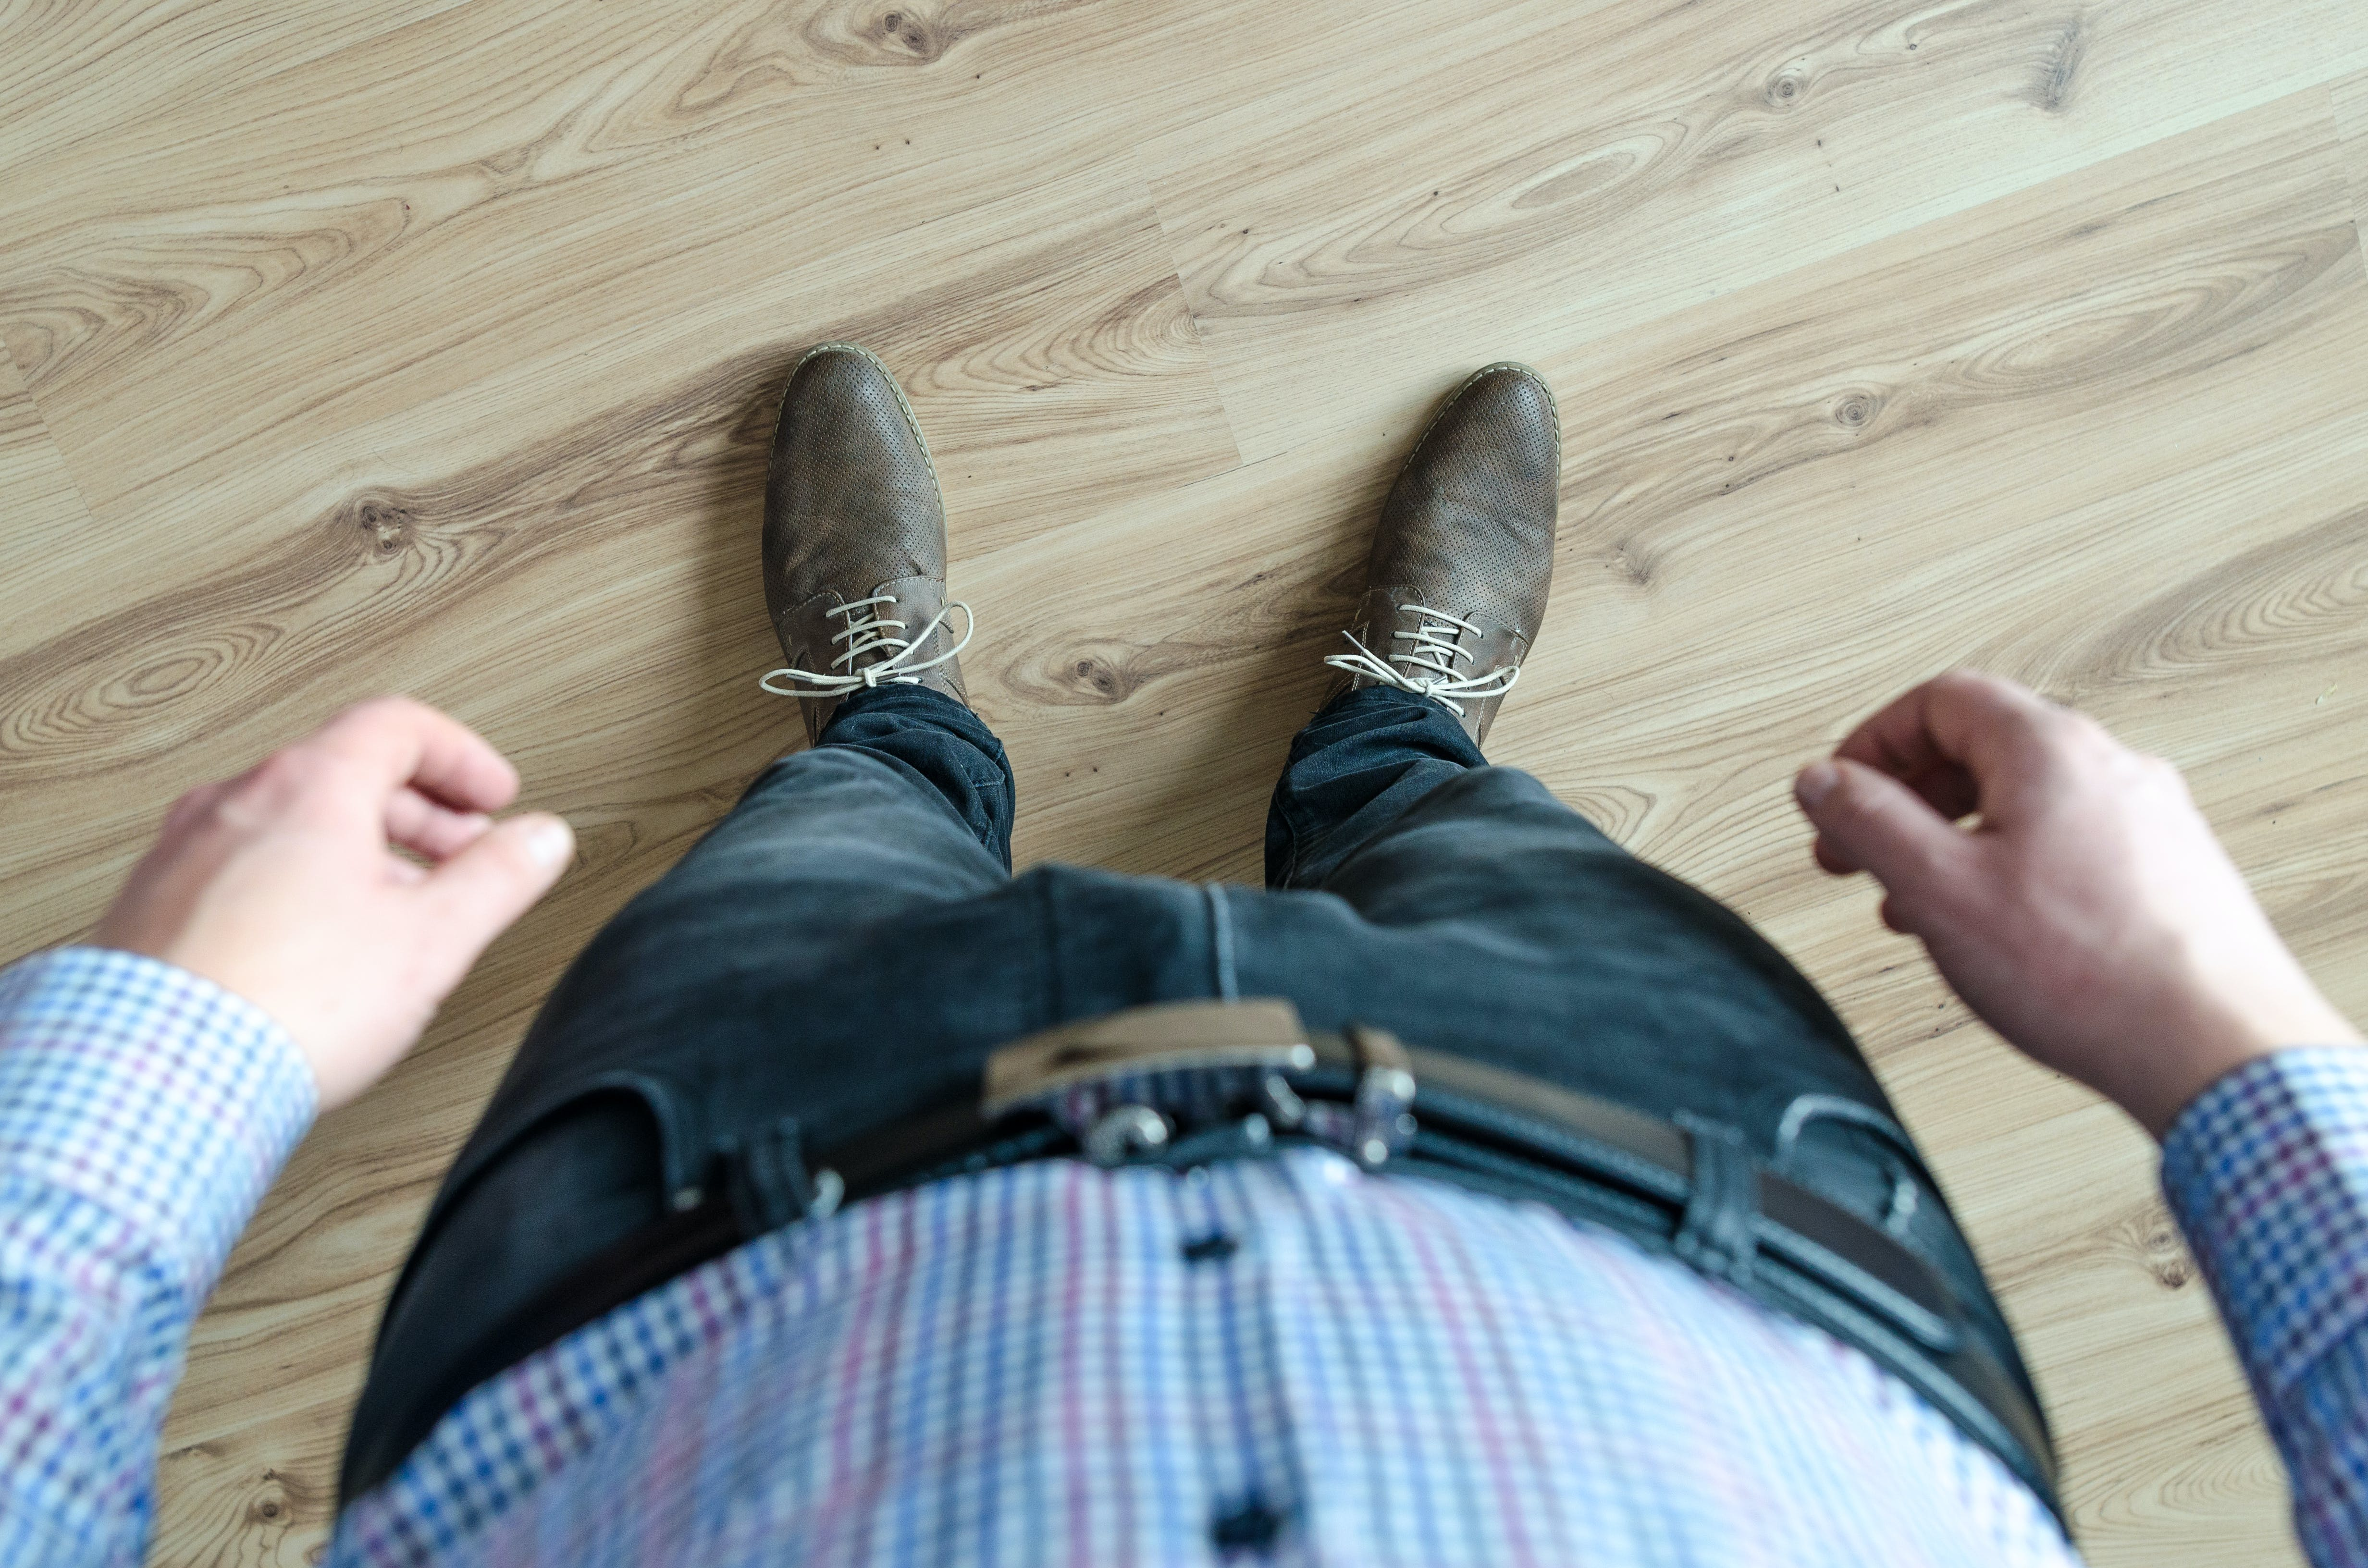 Person Wearing Black Jeans While Standing